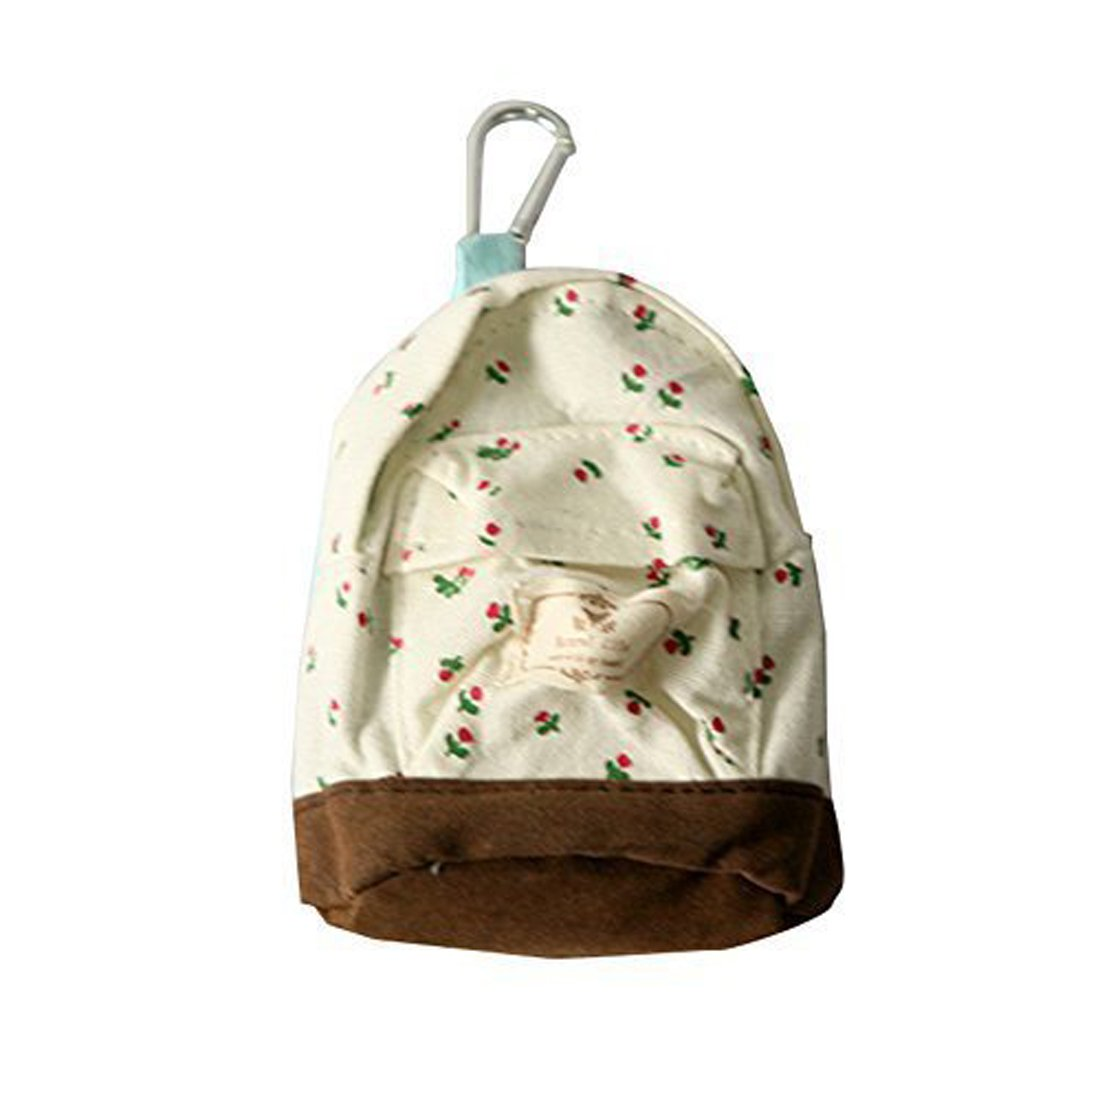 Mini Back-Pack for only $2.63.